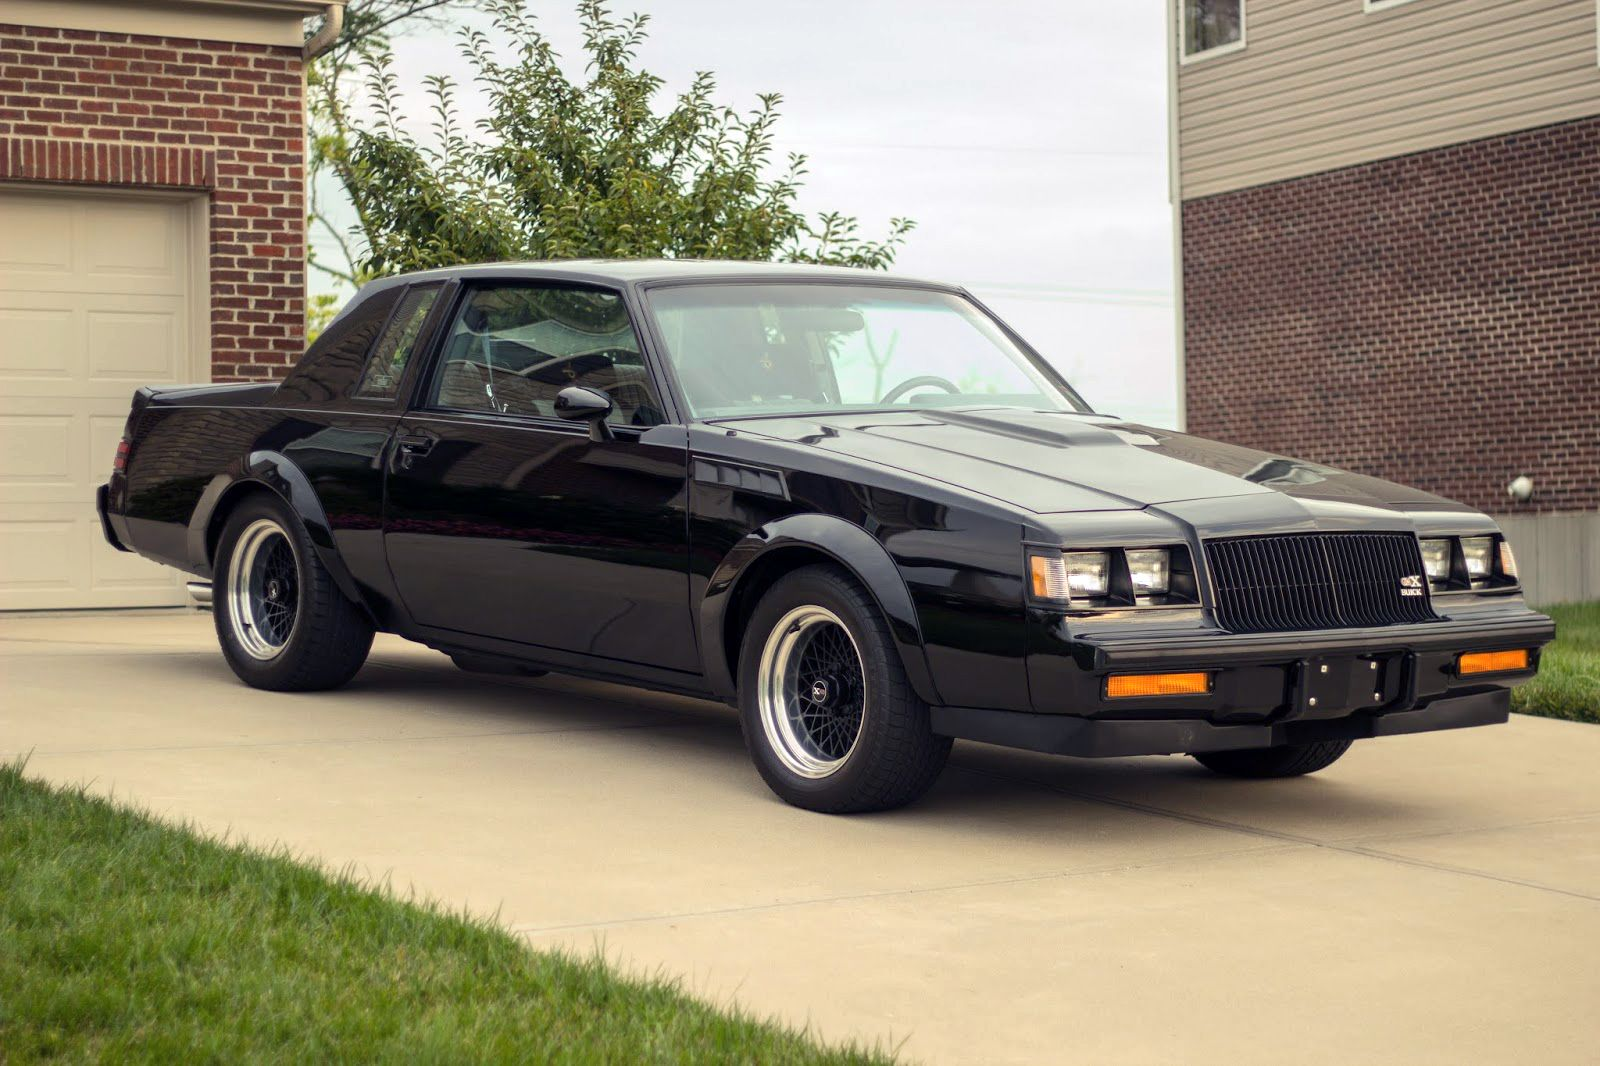 Buick Gnx Buick Grand National Grand National Car 1987 Buick Grand National